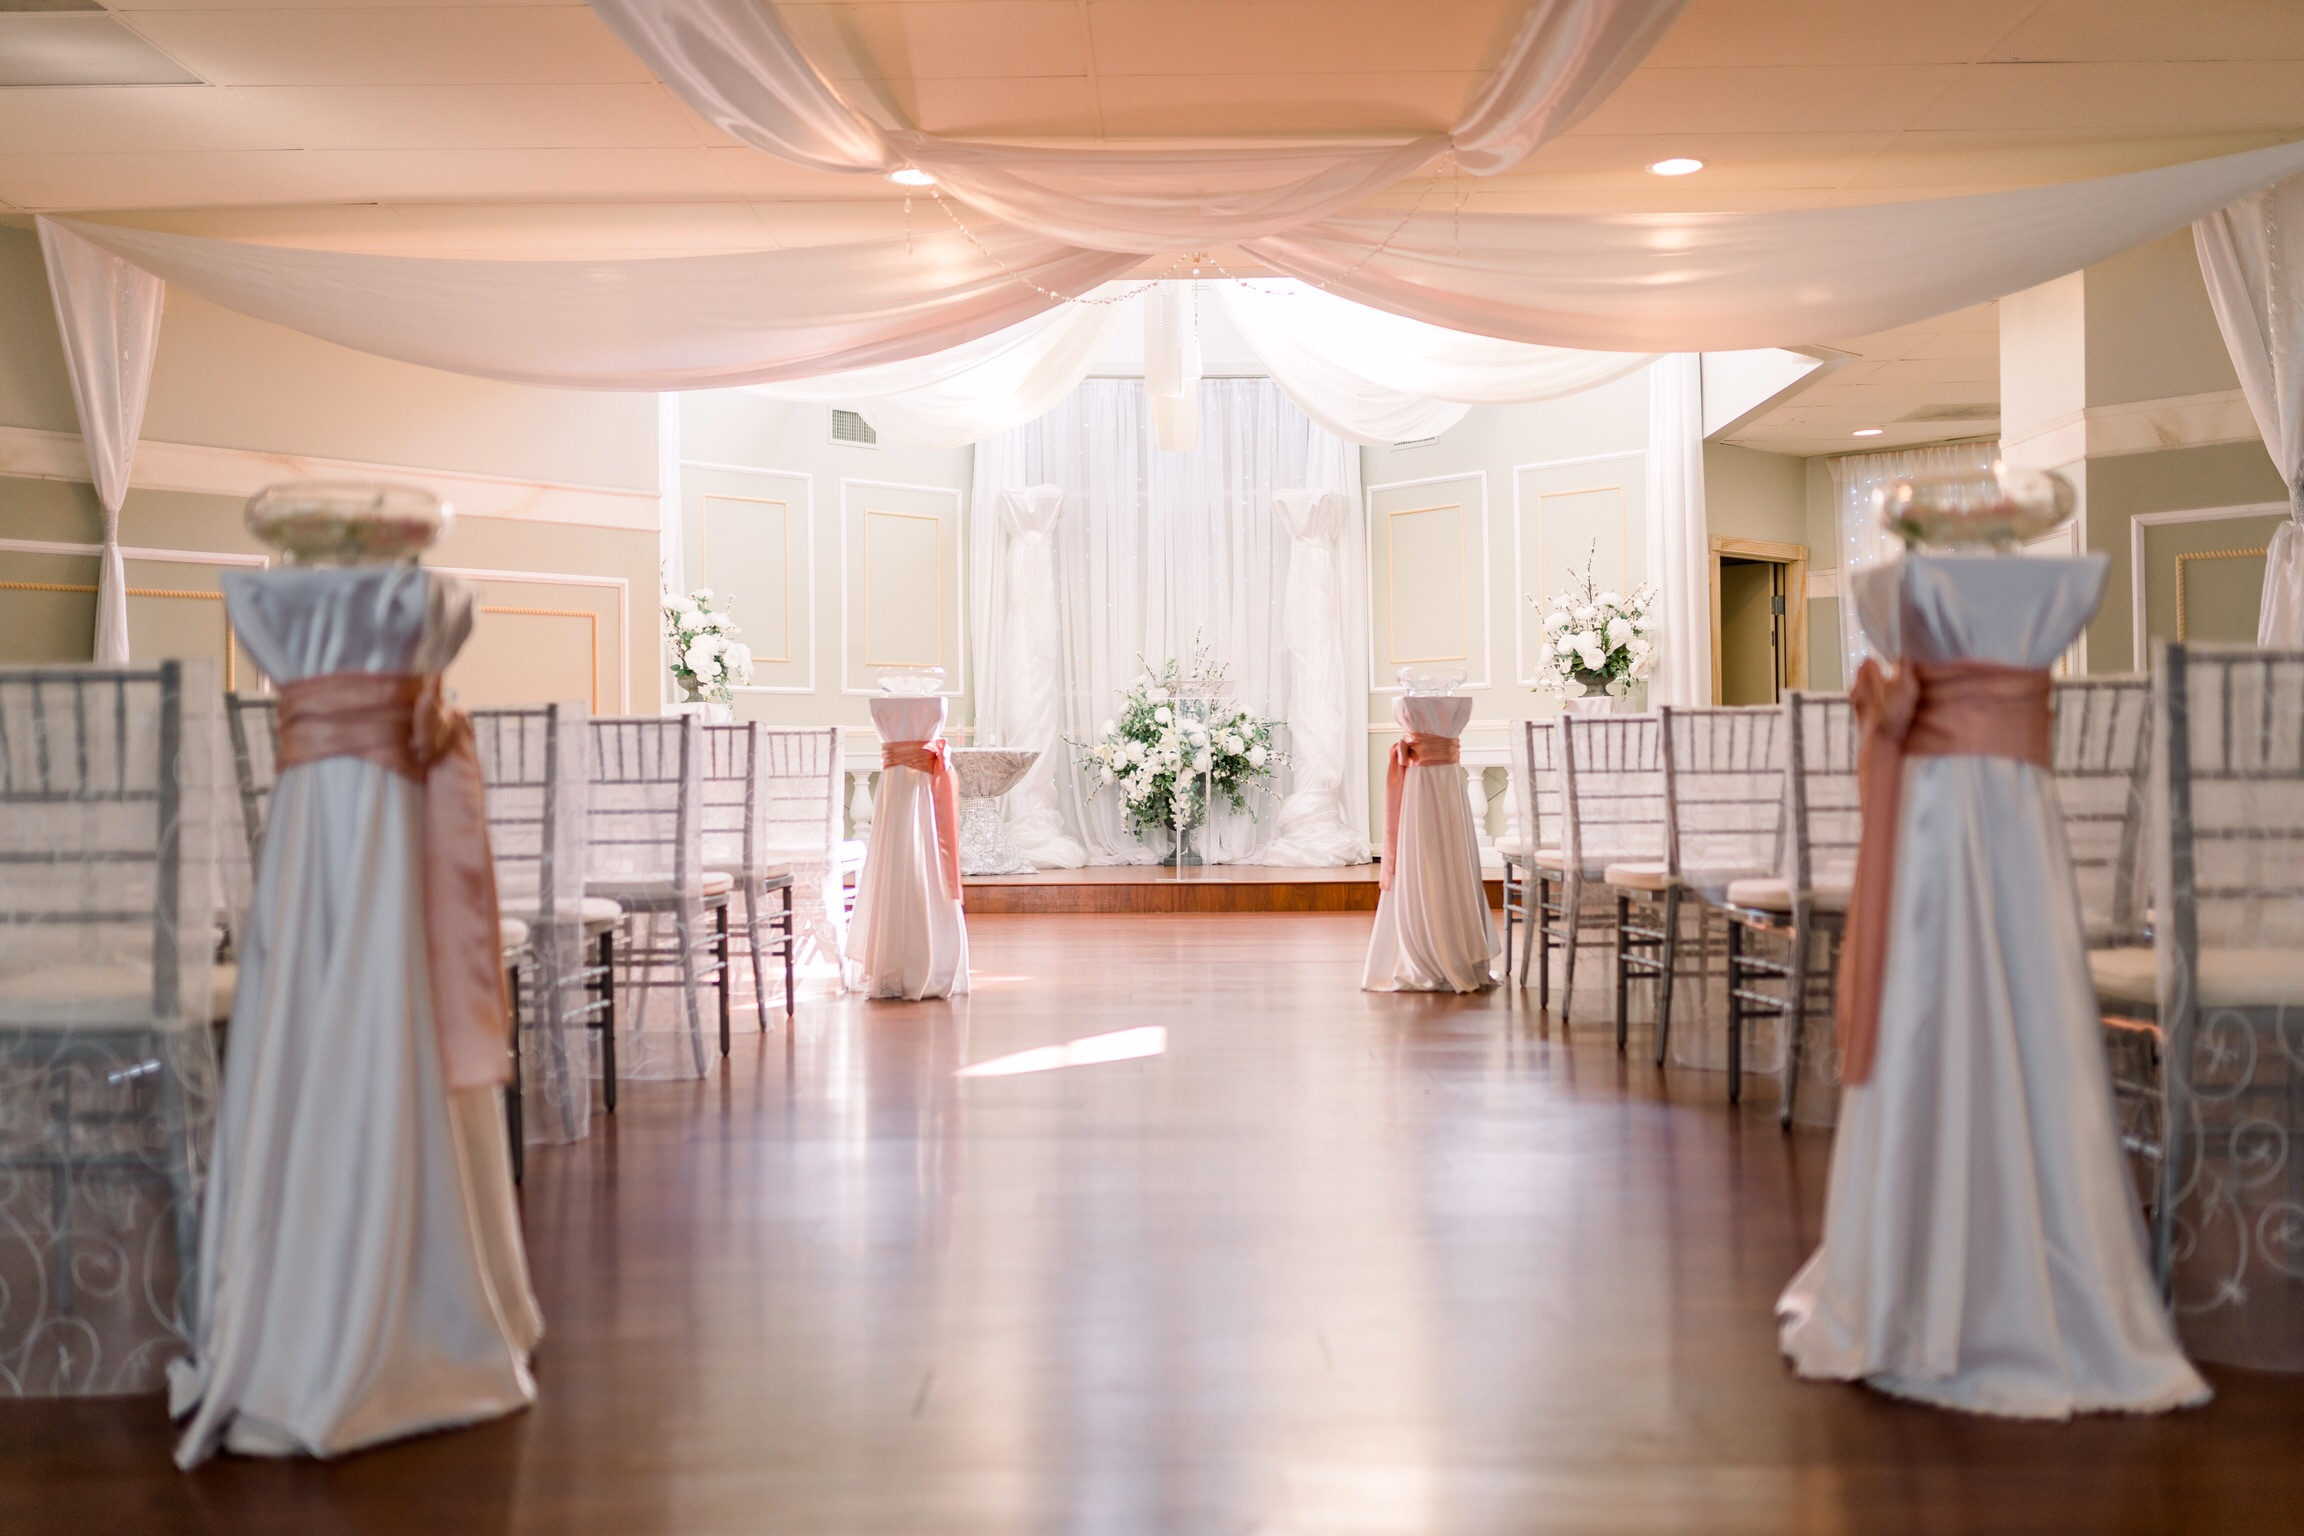 Affordable Wedding Services in Las Vegas